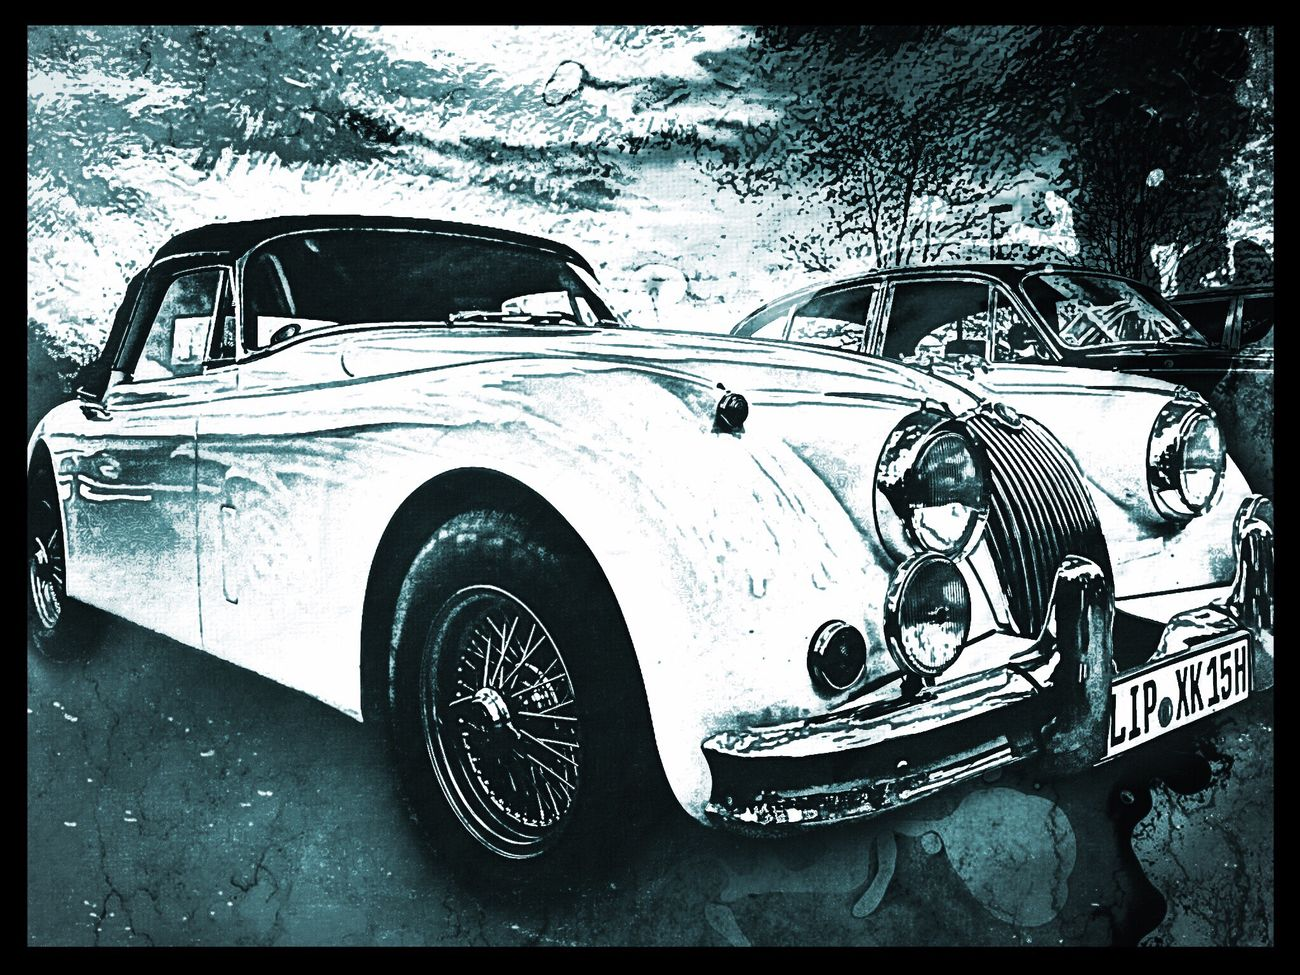 JAGUAR Art, Drawing, Creativity Car Outdoors Art Ride Or Die Garage Car Collection Walking Around Streetphotography The Drive Luxxxs Land Vehicle EyeEm Gallery Tranquil Scene Hello World Old-fashioned Cabrio Oldtimer Mode Of Transport Transportation No People Day